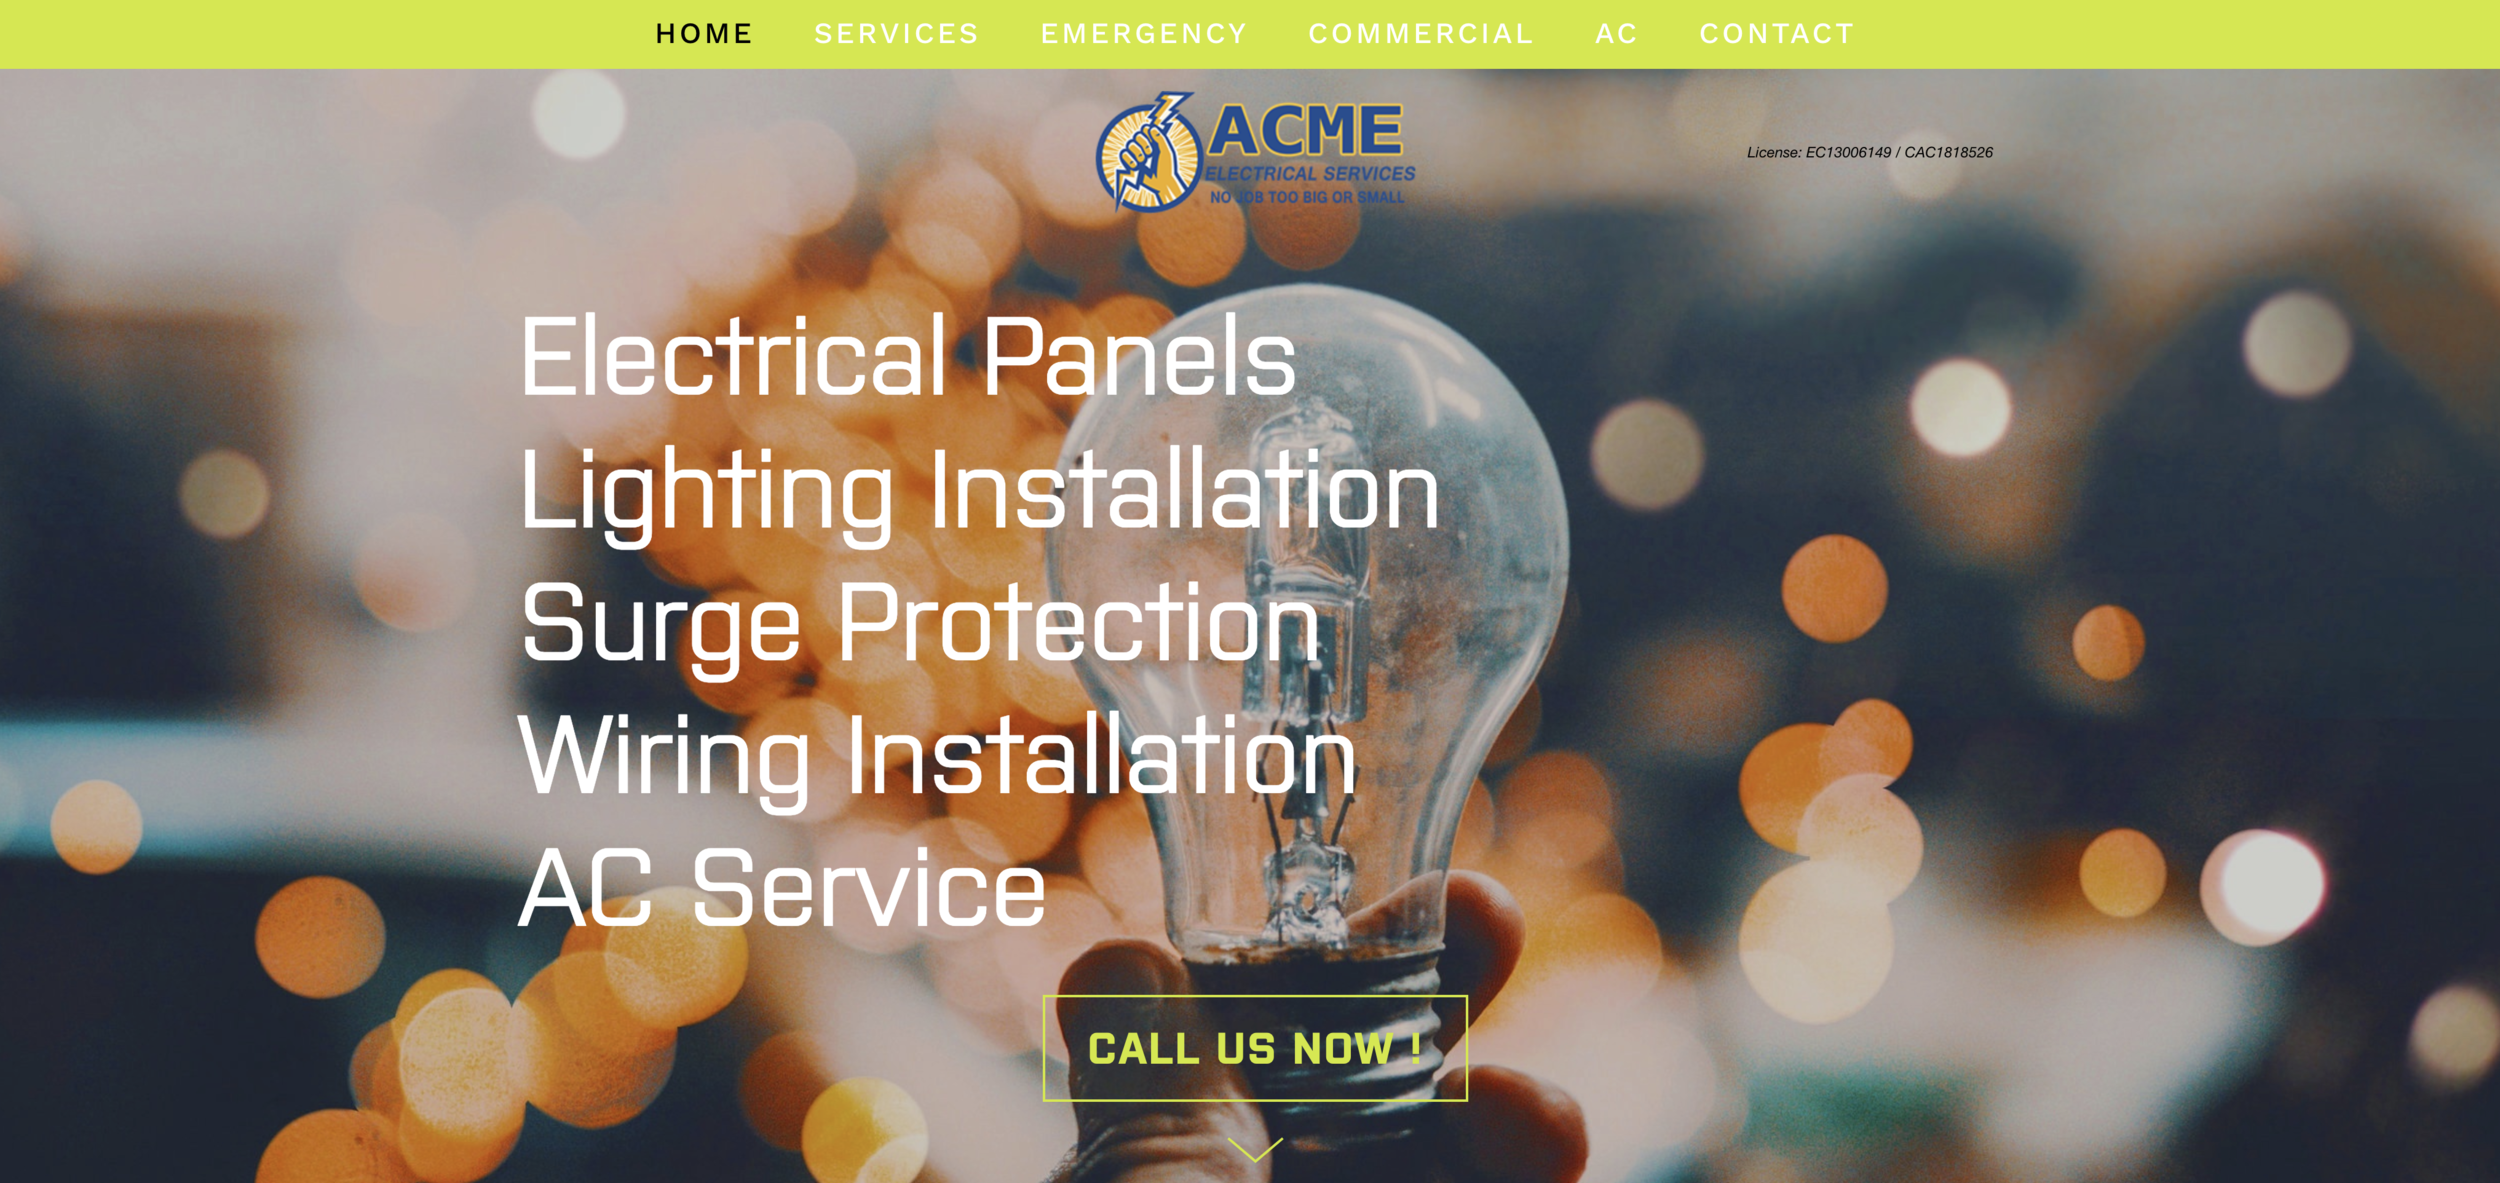 Click to view acmeelectricalservices.com